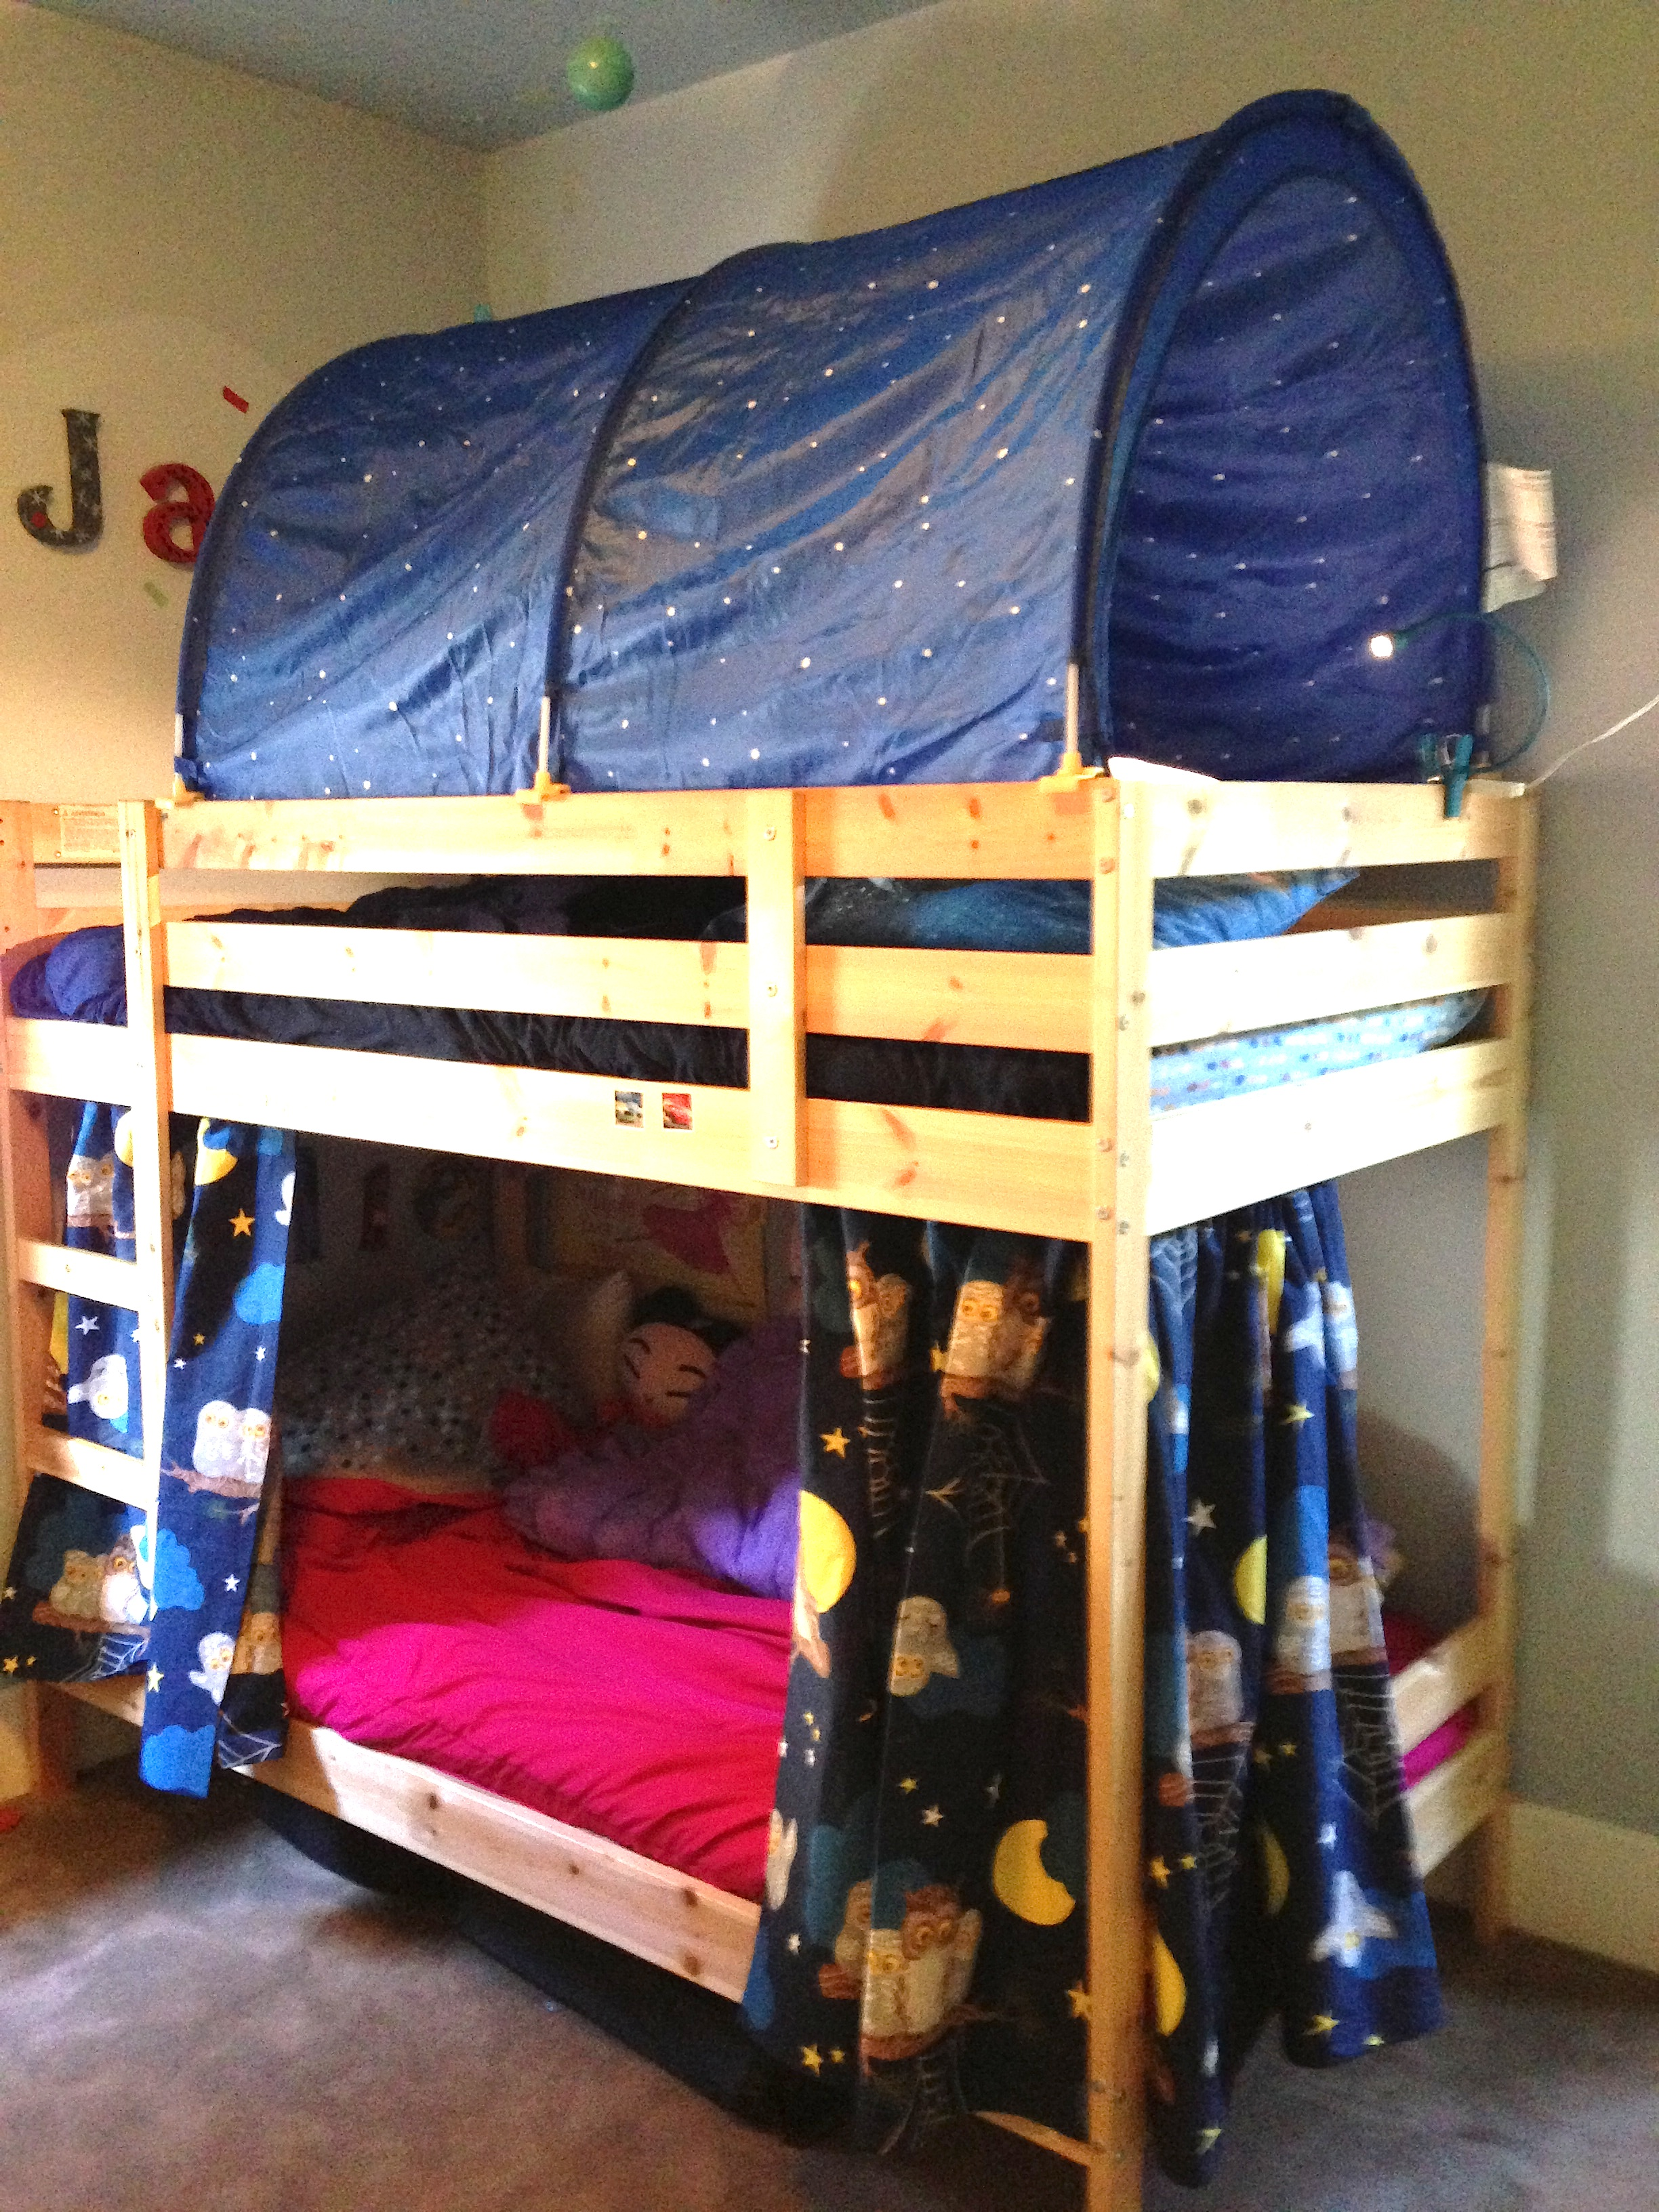 How To Be More Confident In Bed Confidence White Wood Bunk Beds For Kids Exclusive Home Design